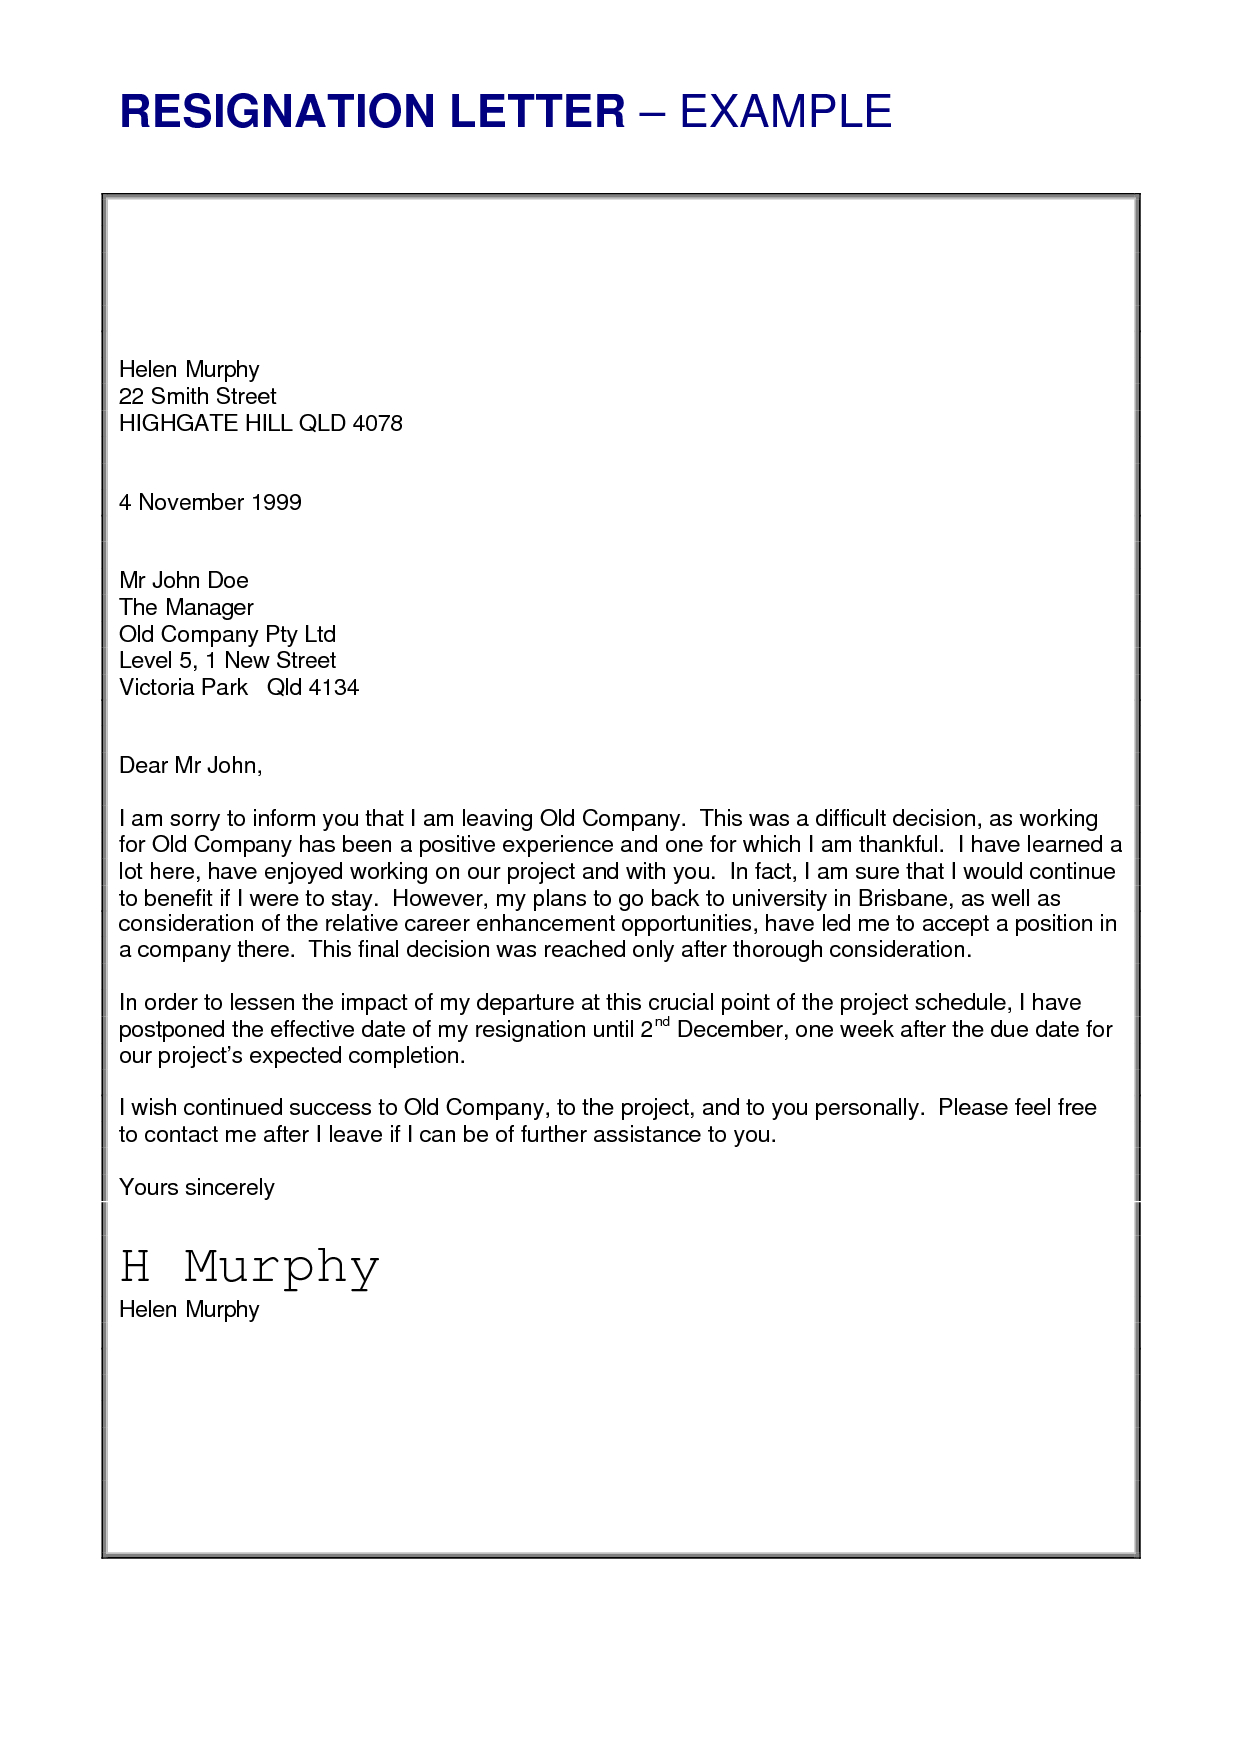 Sample Resignation Letter Template - Job Resignation Letter Sample Loganun Blog Job